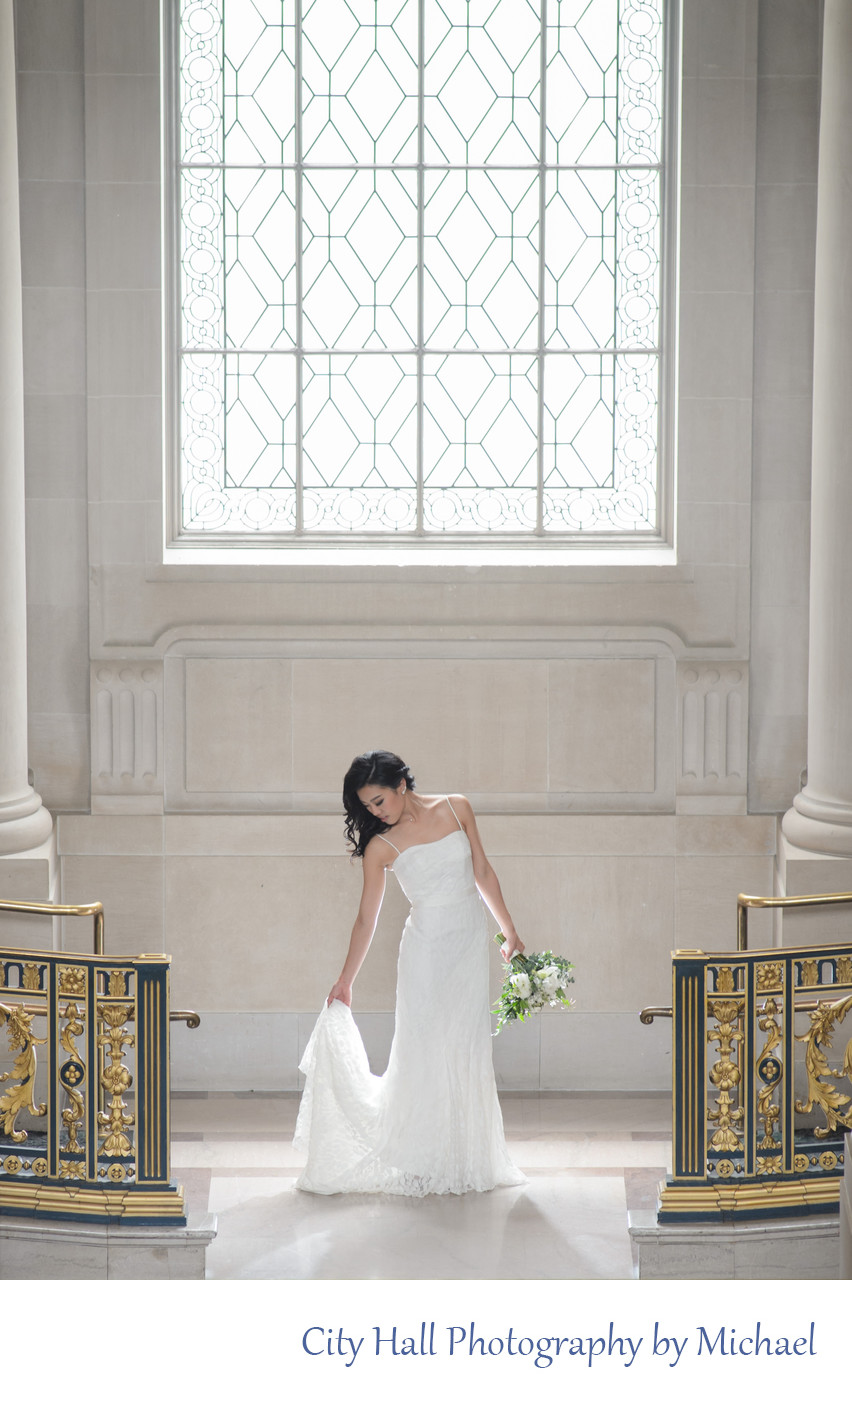 Wedding Photographer City Hall - Bride Window Light